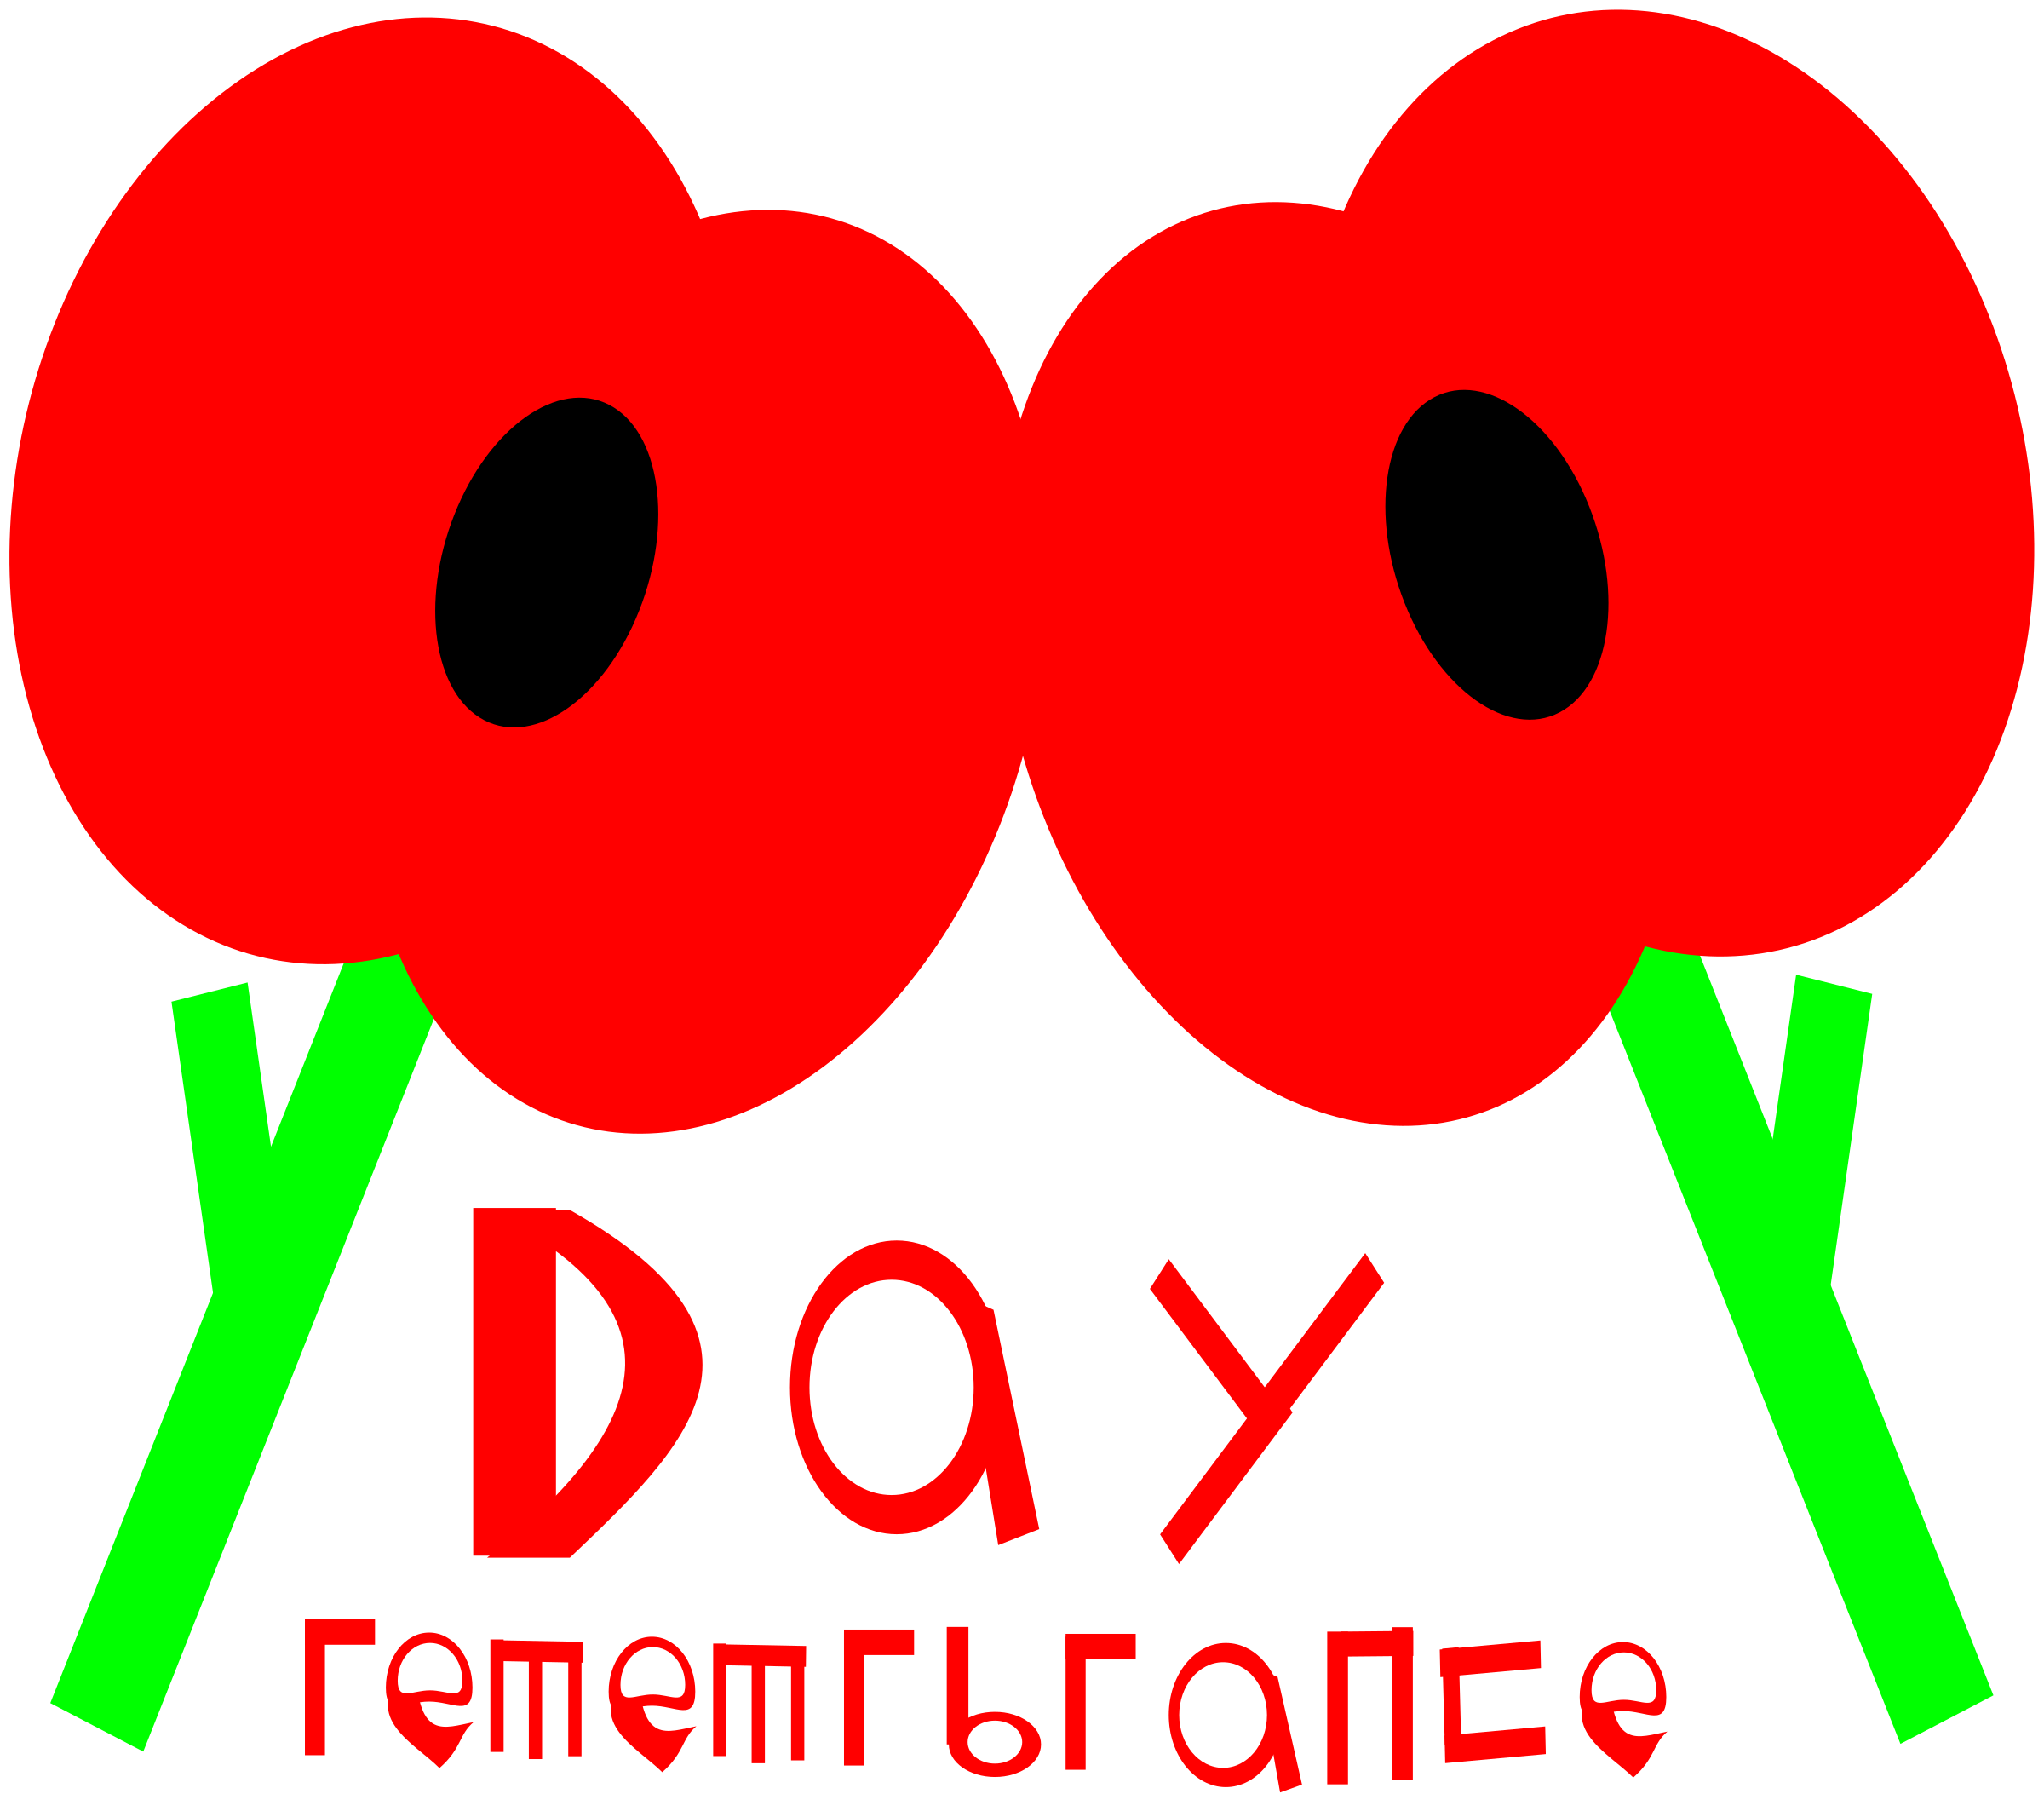 rememrbrance day by PeterBrough